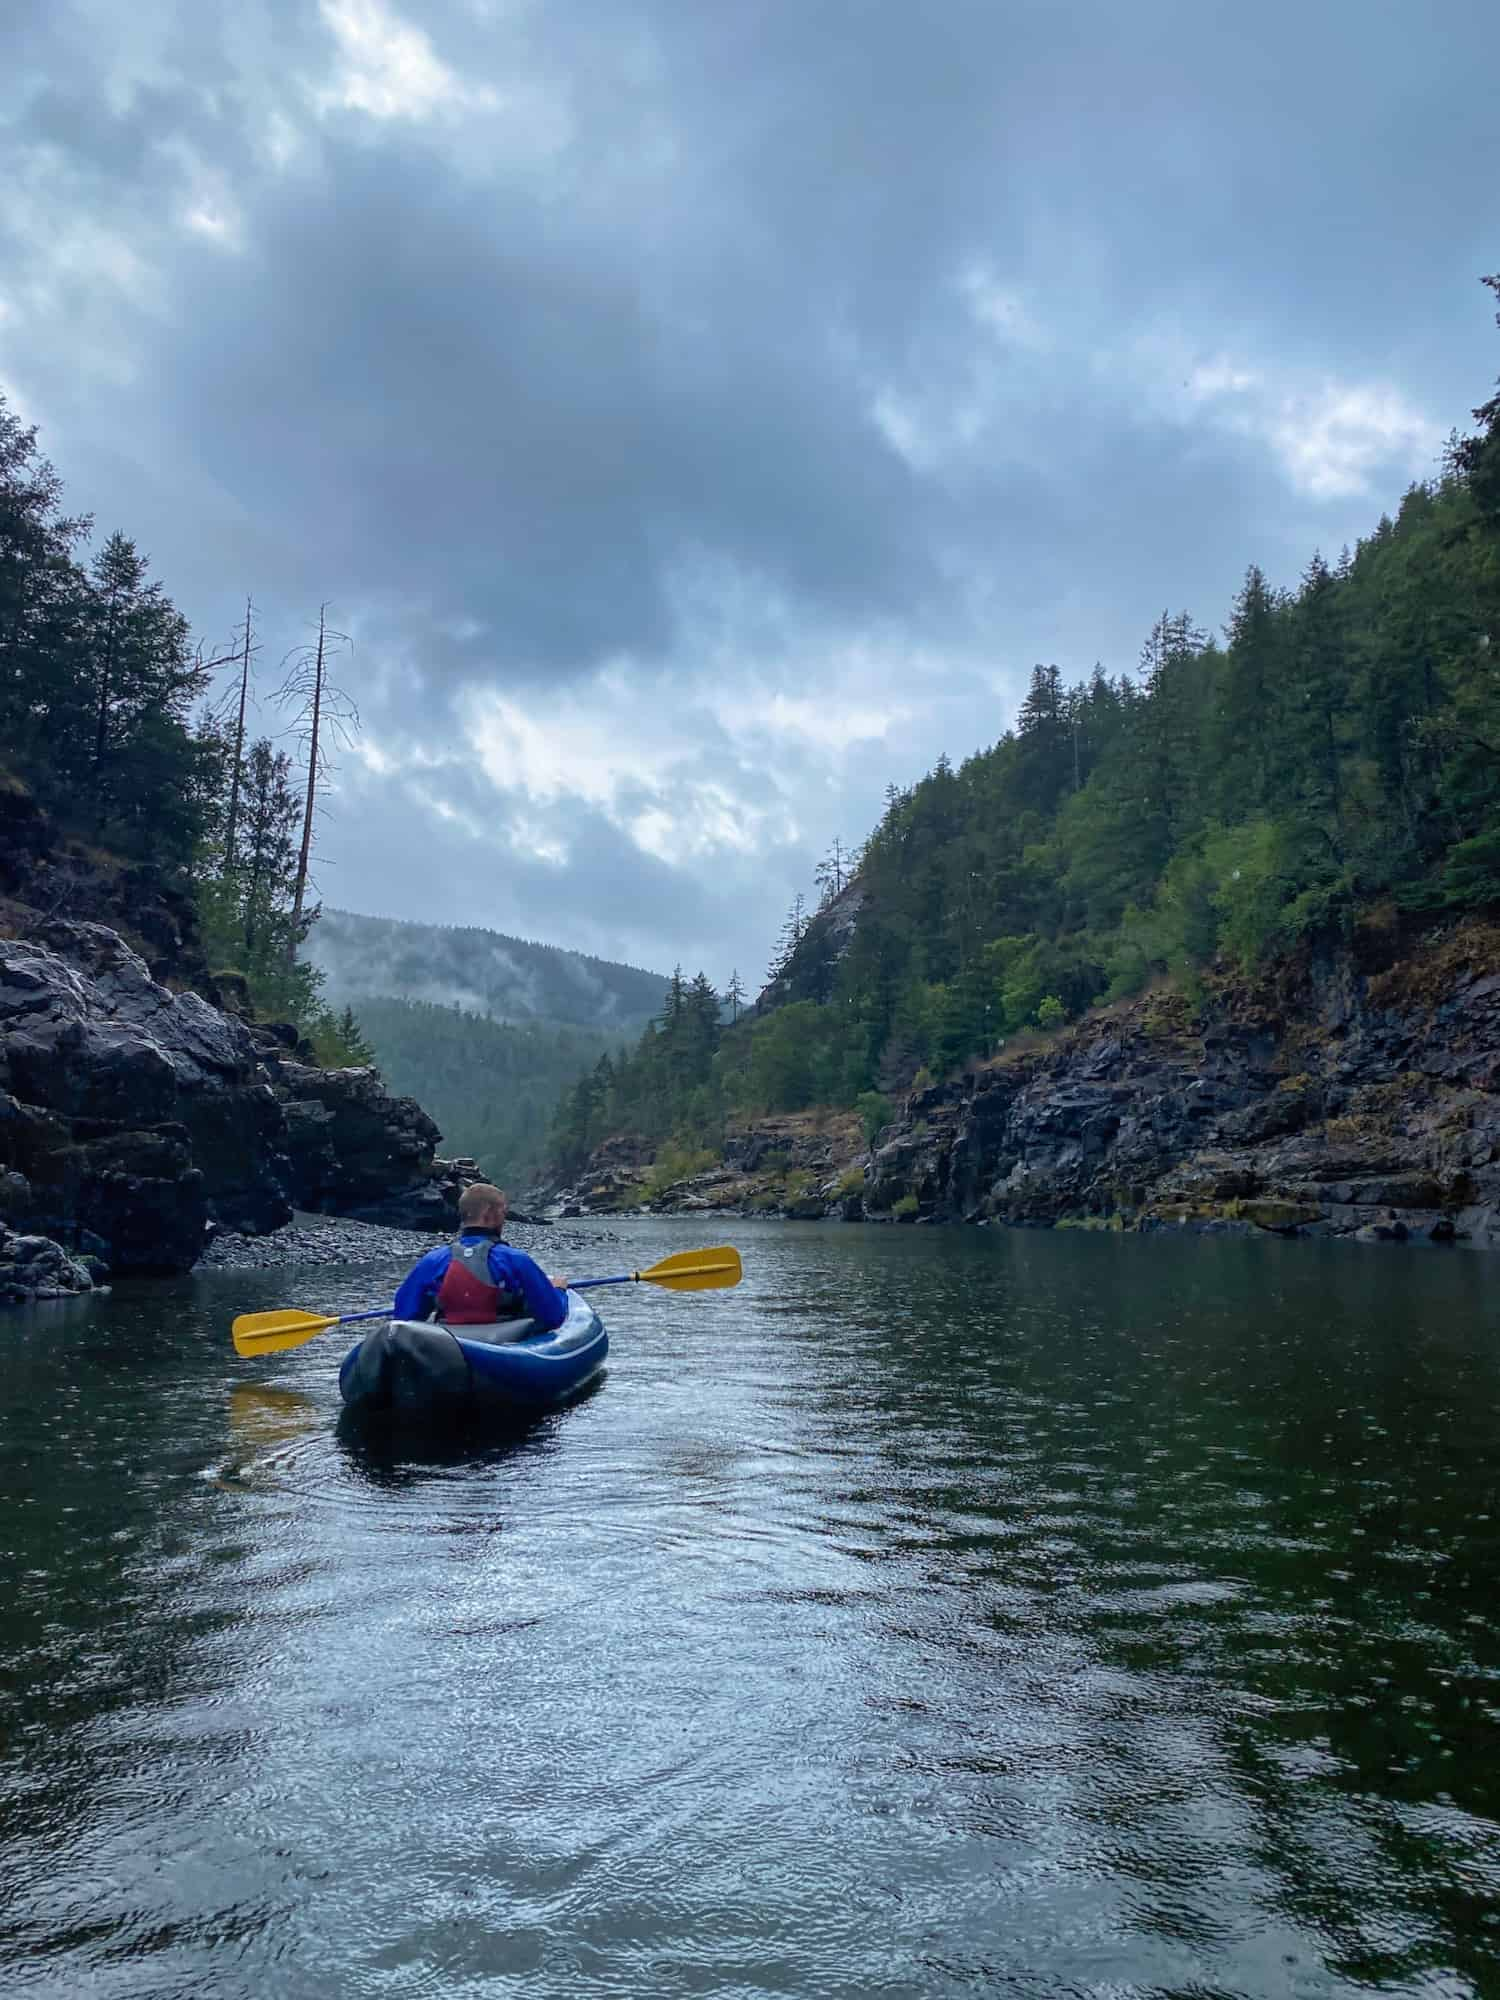 3 Days in Crescent City - Kayaking the Smith River in the rain